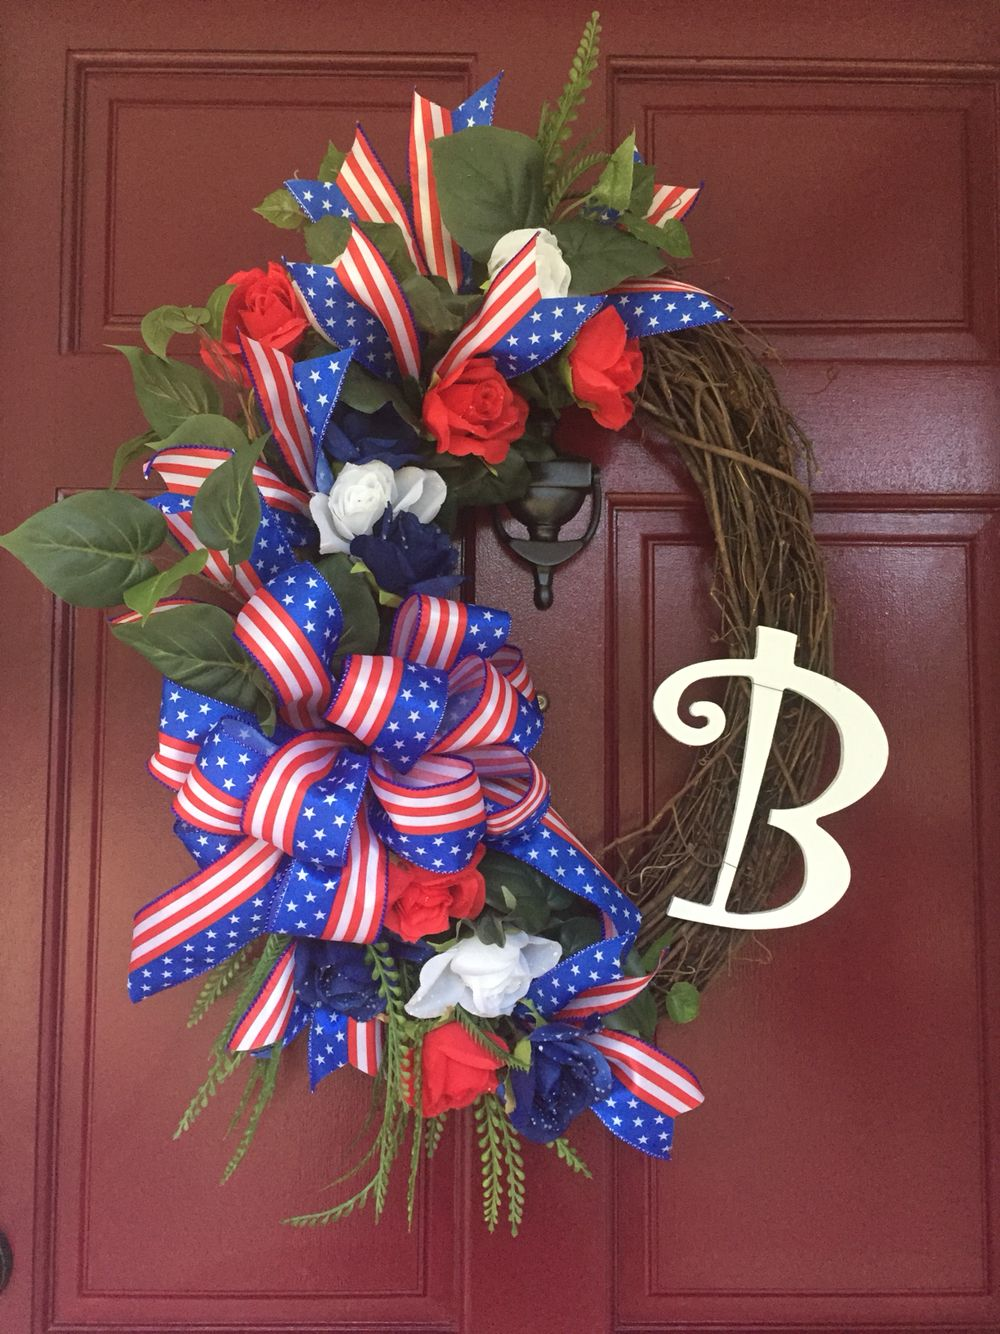 Patriotic Wreath Red White Blue Initial Grapevine Wreath Patriotic Decorations Door Wreaths Diy Patriotic Wreath